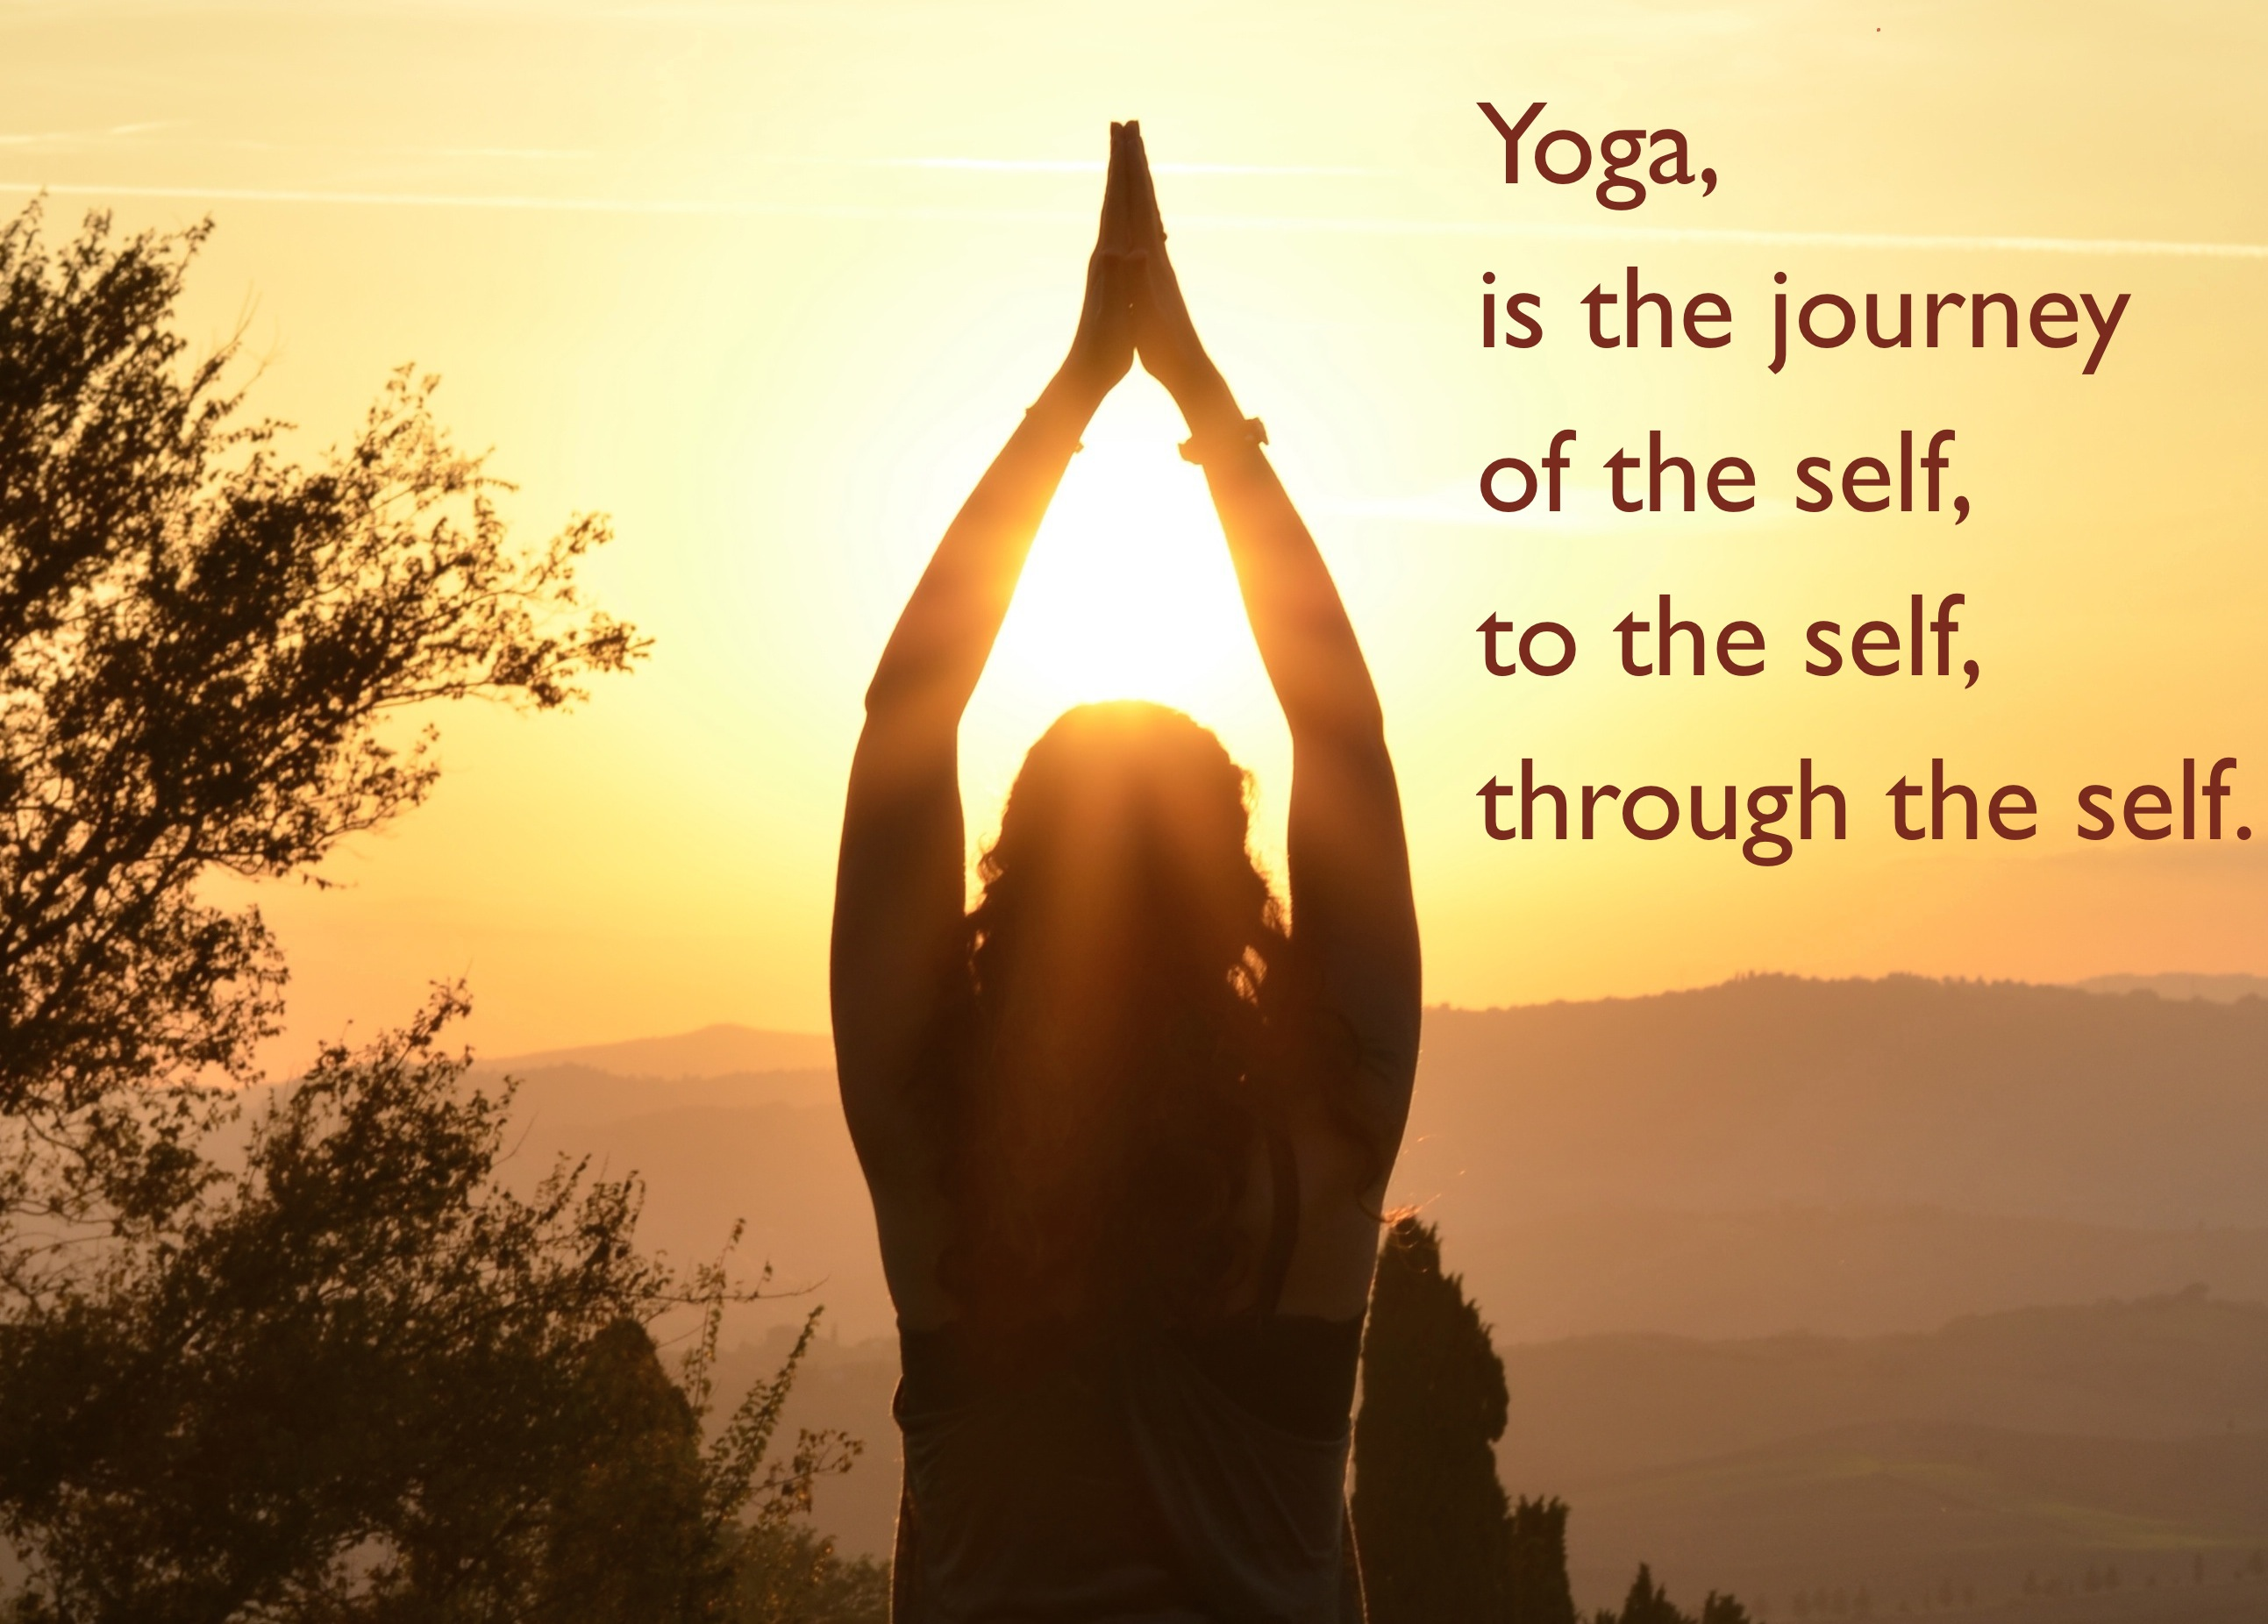 yoga quotes - photo #32